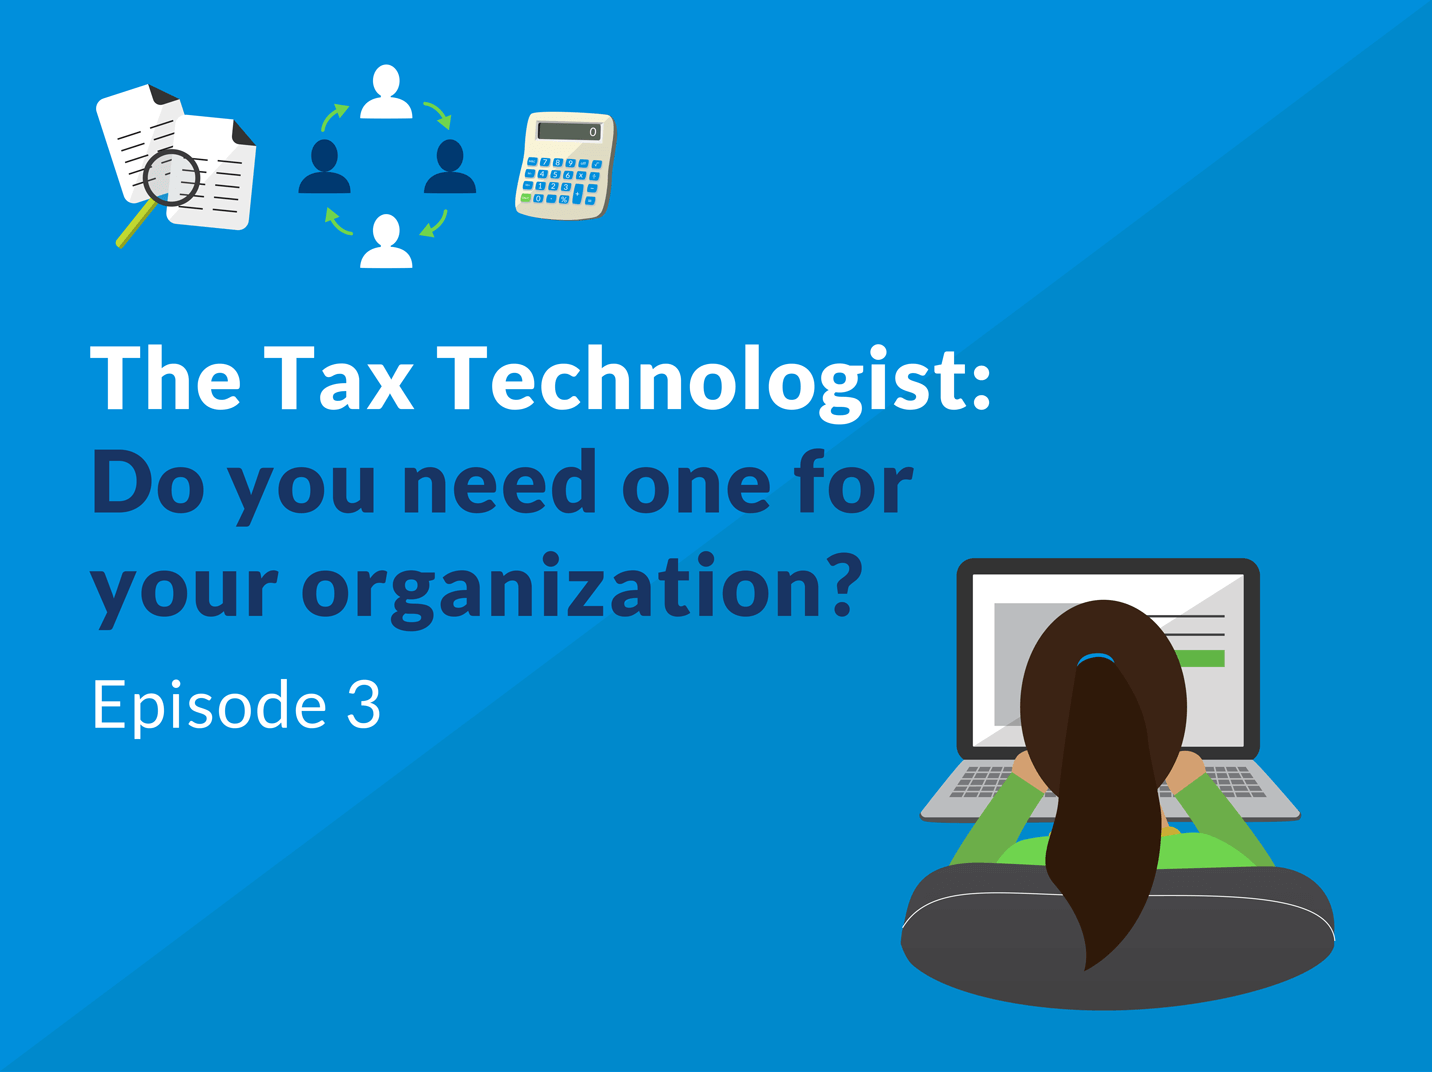 The Tax Technologist: Do you need one for your organization?